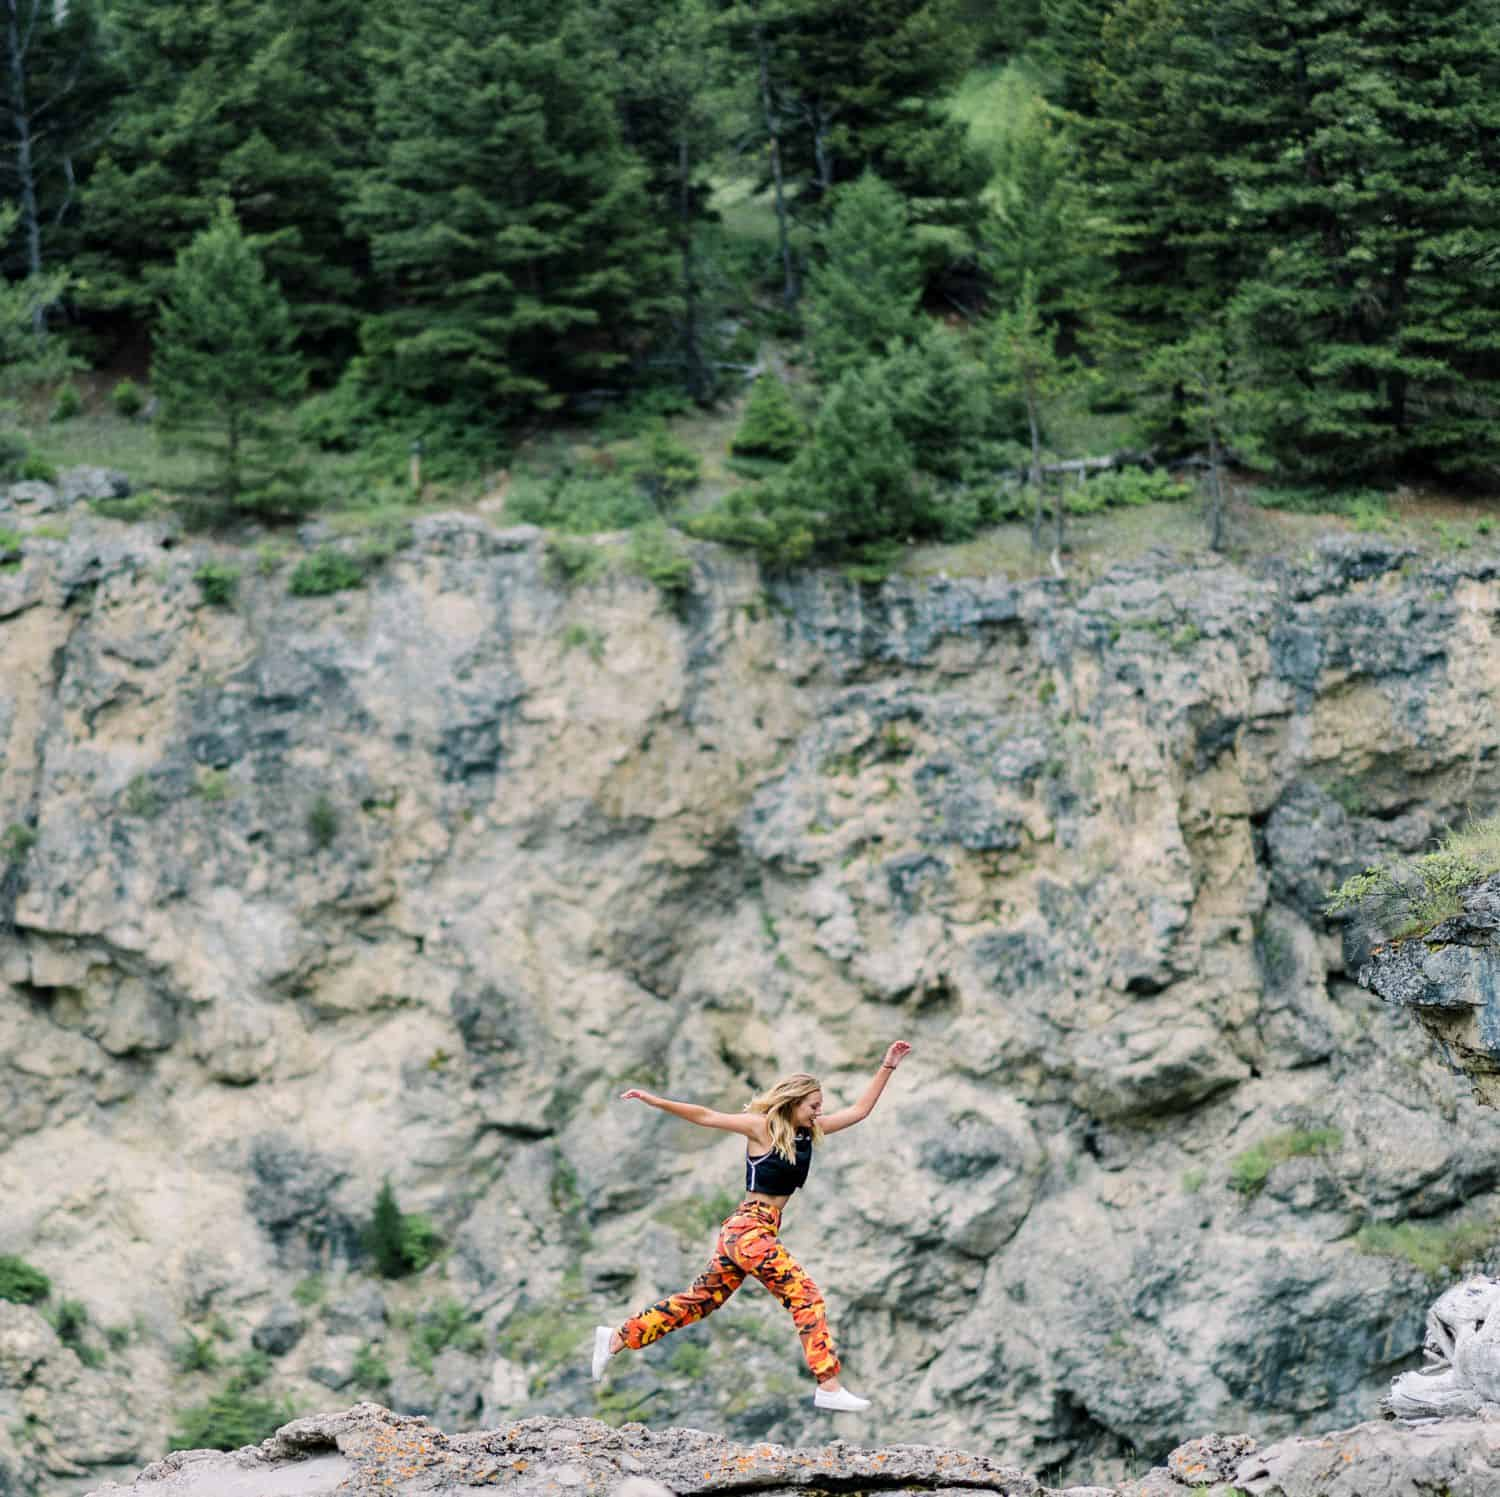 A senior girl leaps across rocks along the side of a cliff